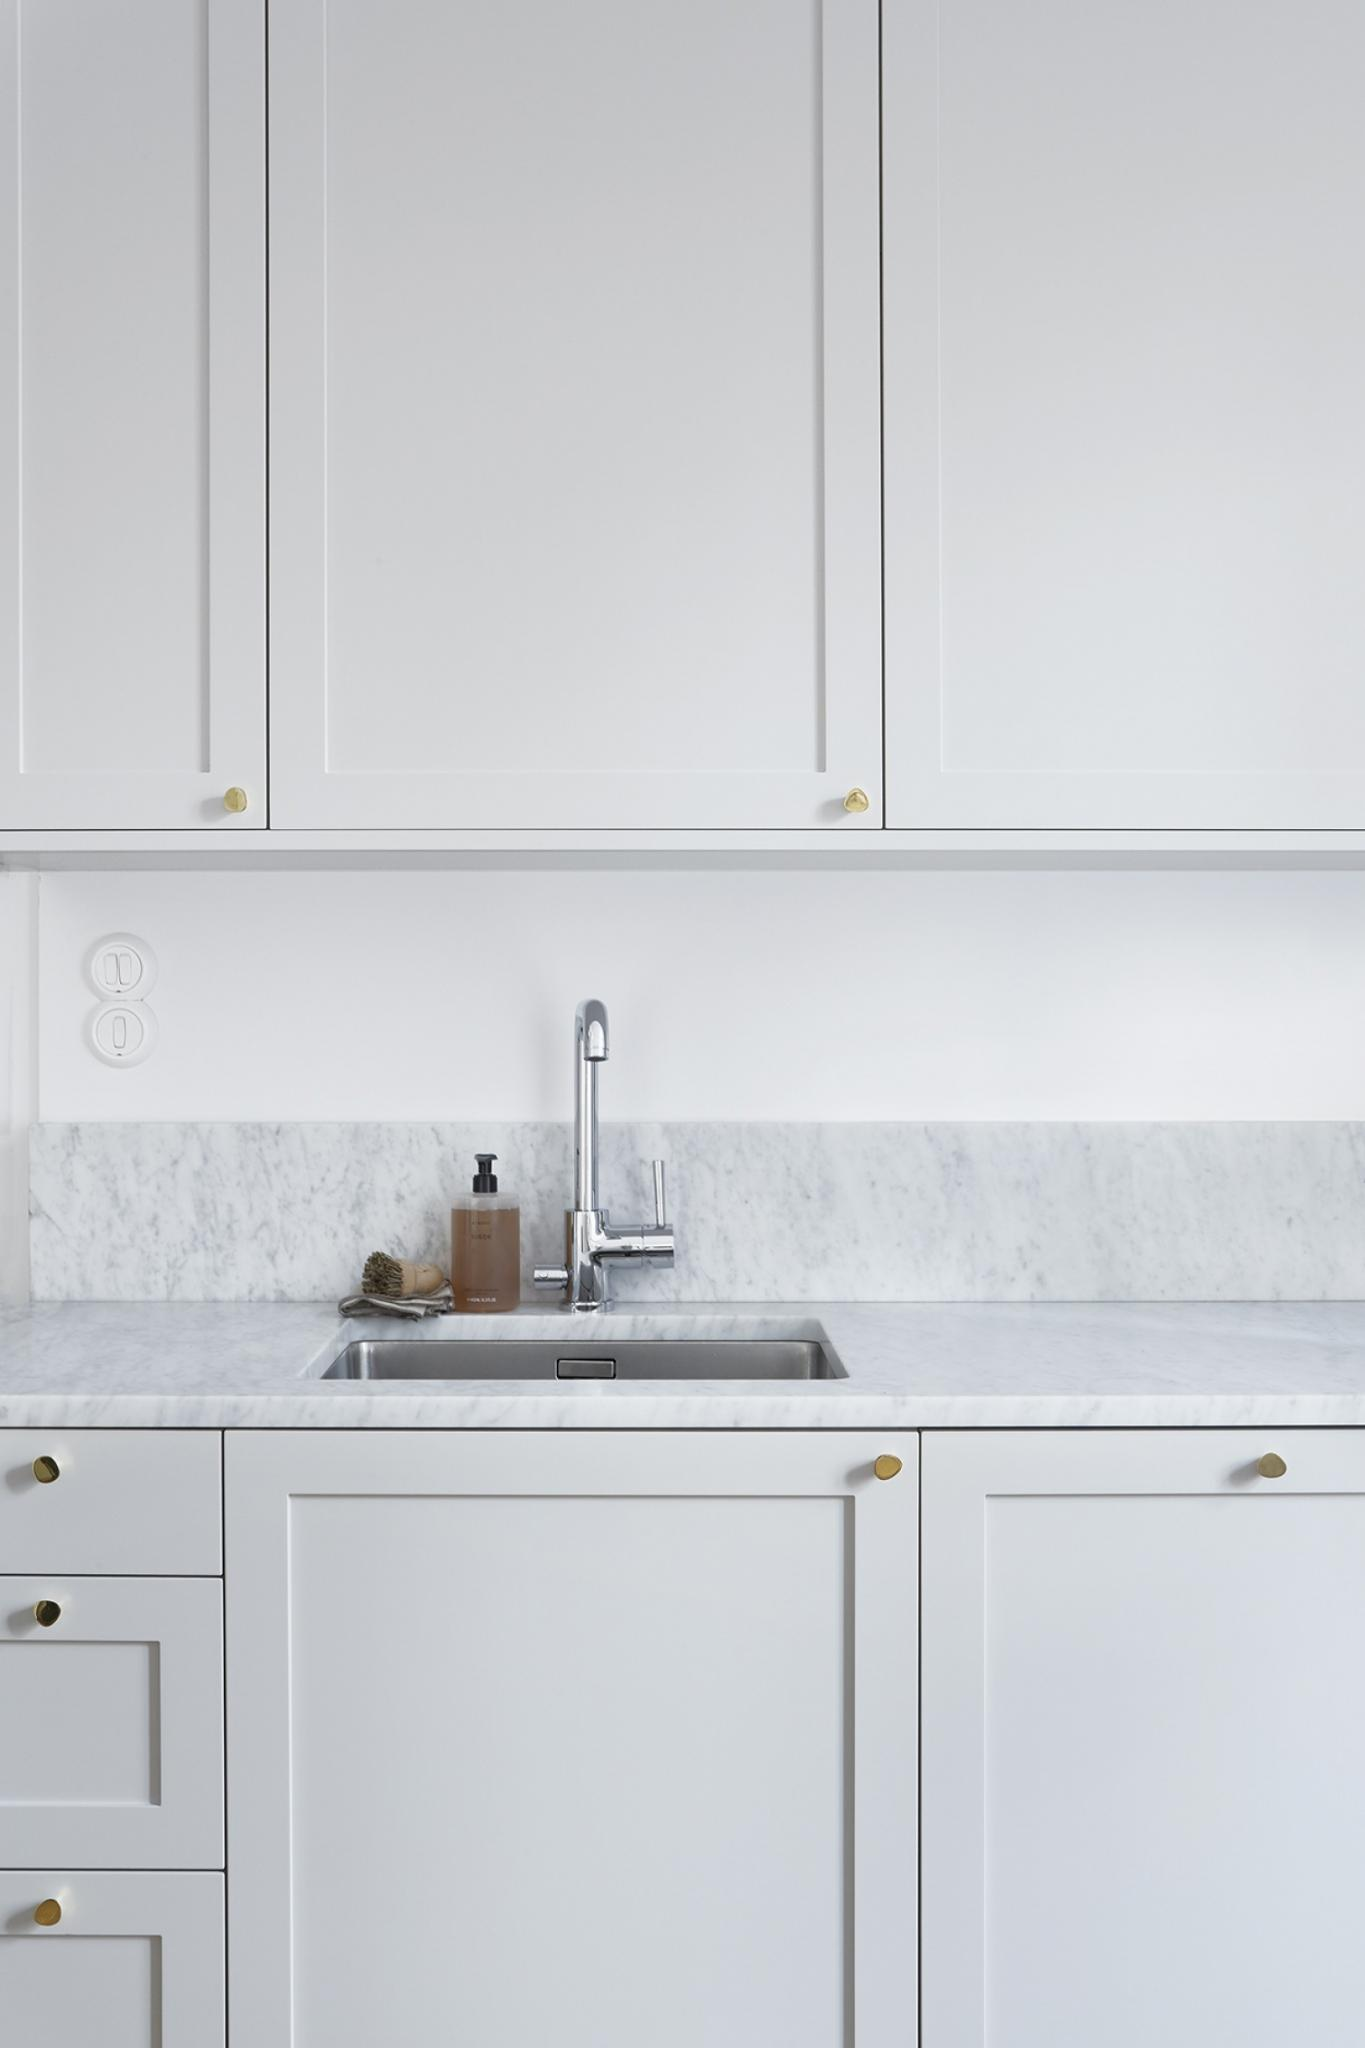 traditional-framed-kitchen-cabnet-doors-know-handles-marble-worktop.jpg